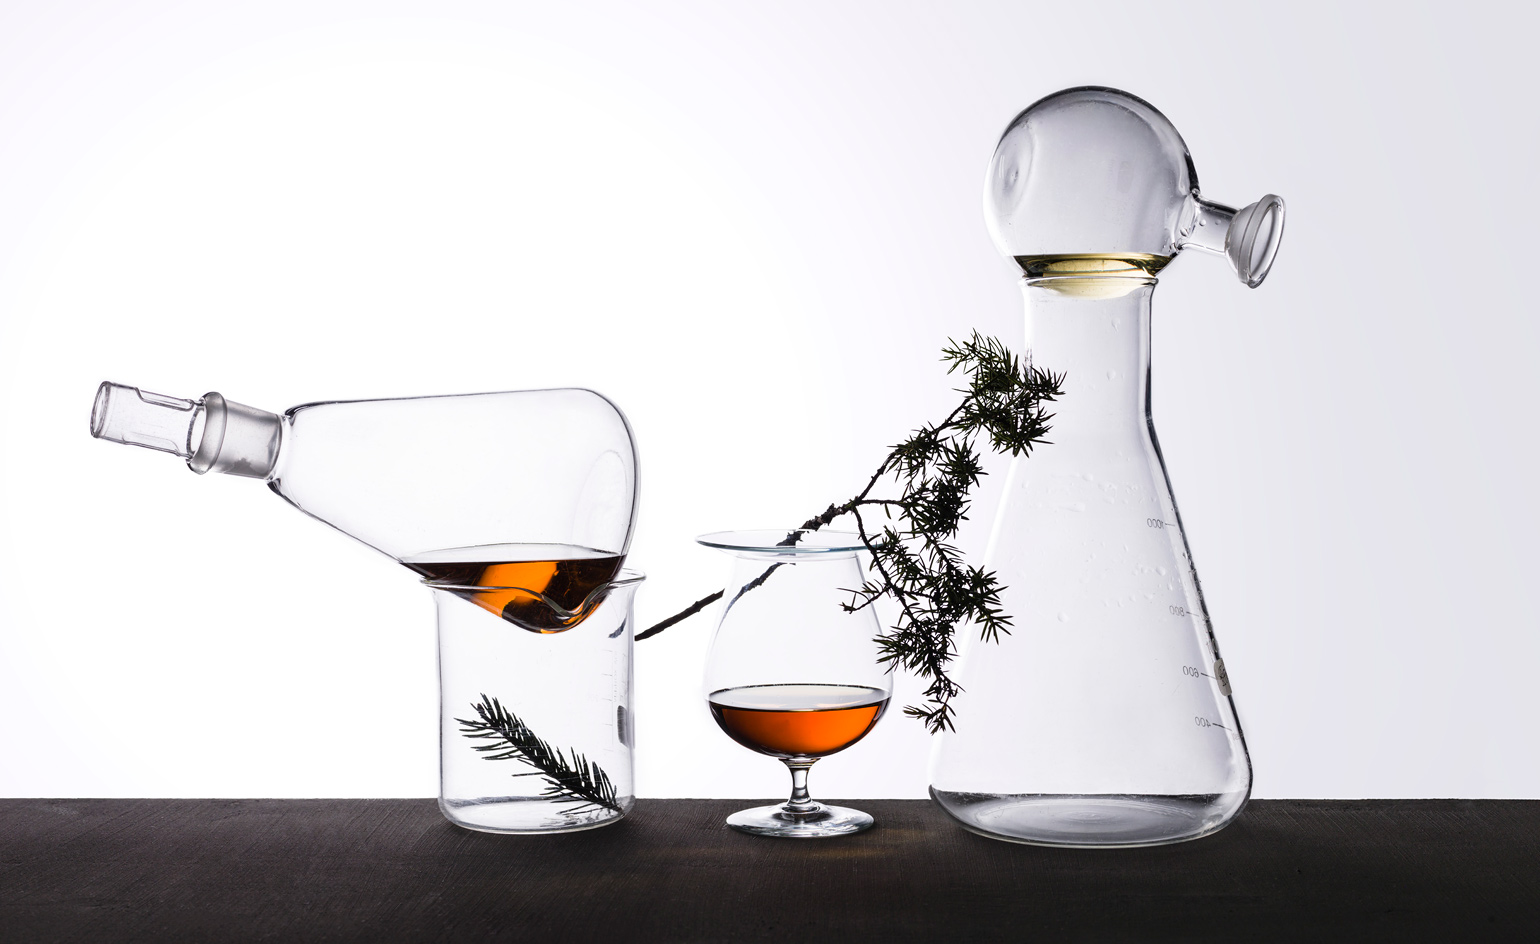 You can buy your home bar accessories online safely and conveniently